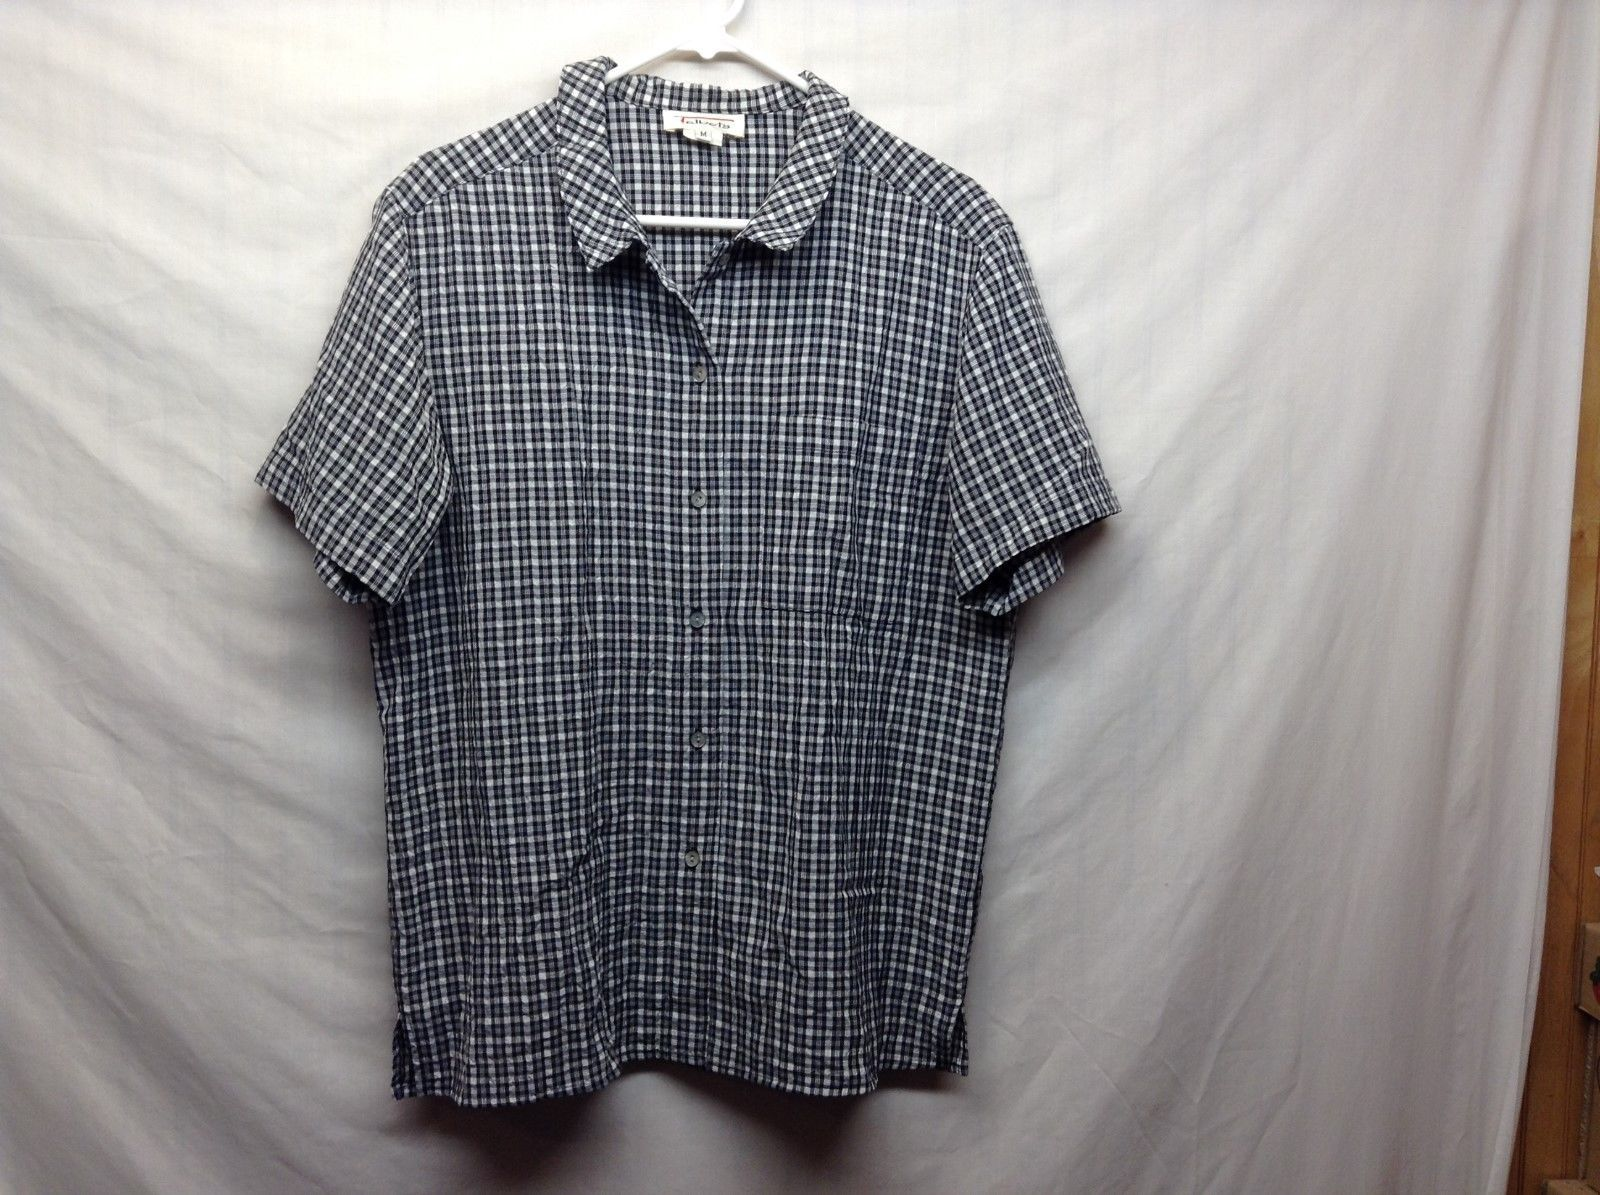 Talbots Black Gray White Short Sleeve Button Up Collared Blouse Sz M